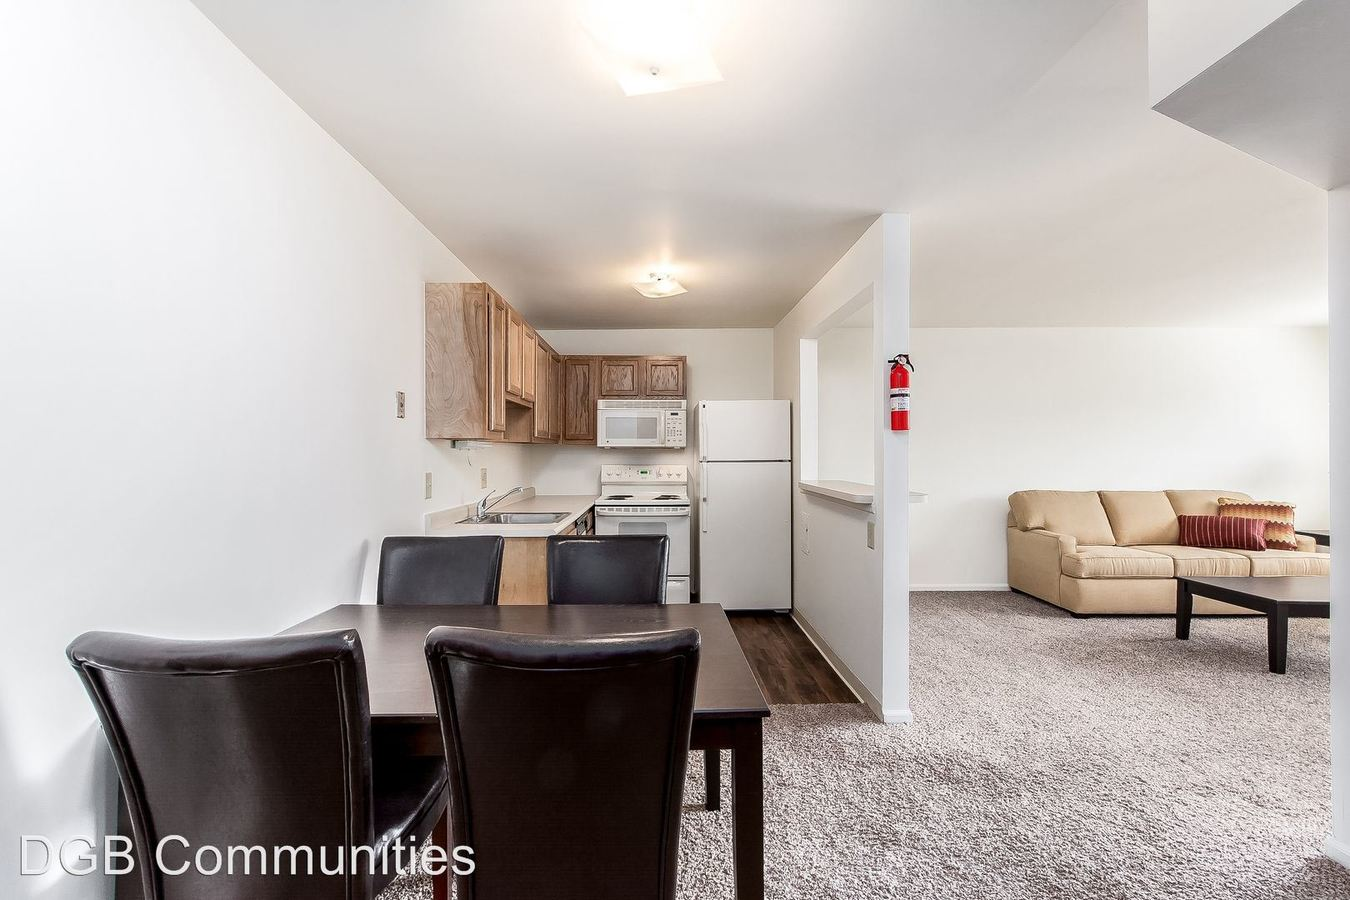 2 Bedrooms 1 Bathroom Apartment for rent at 1190 Chambers Rd in Columbus, OH